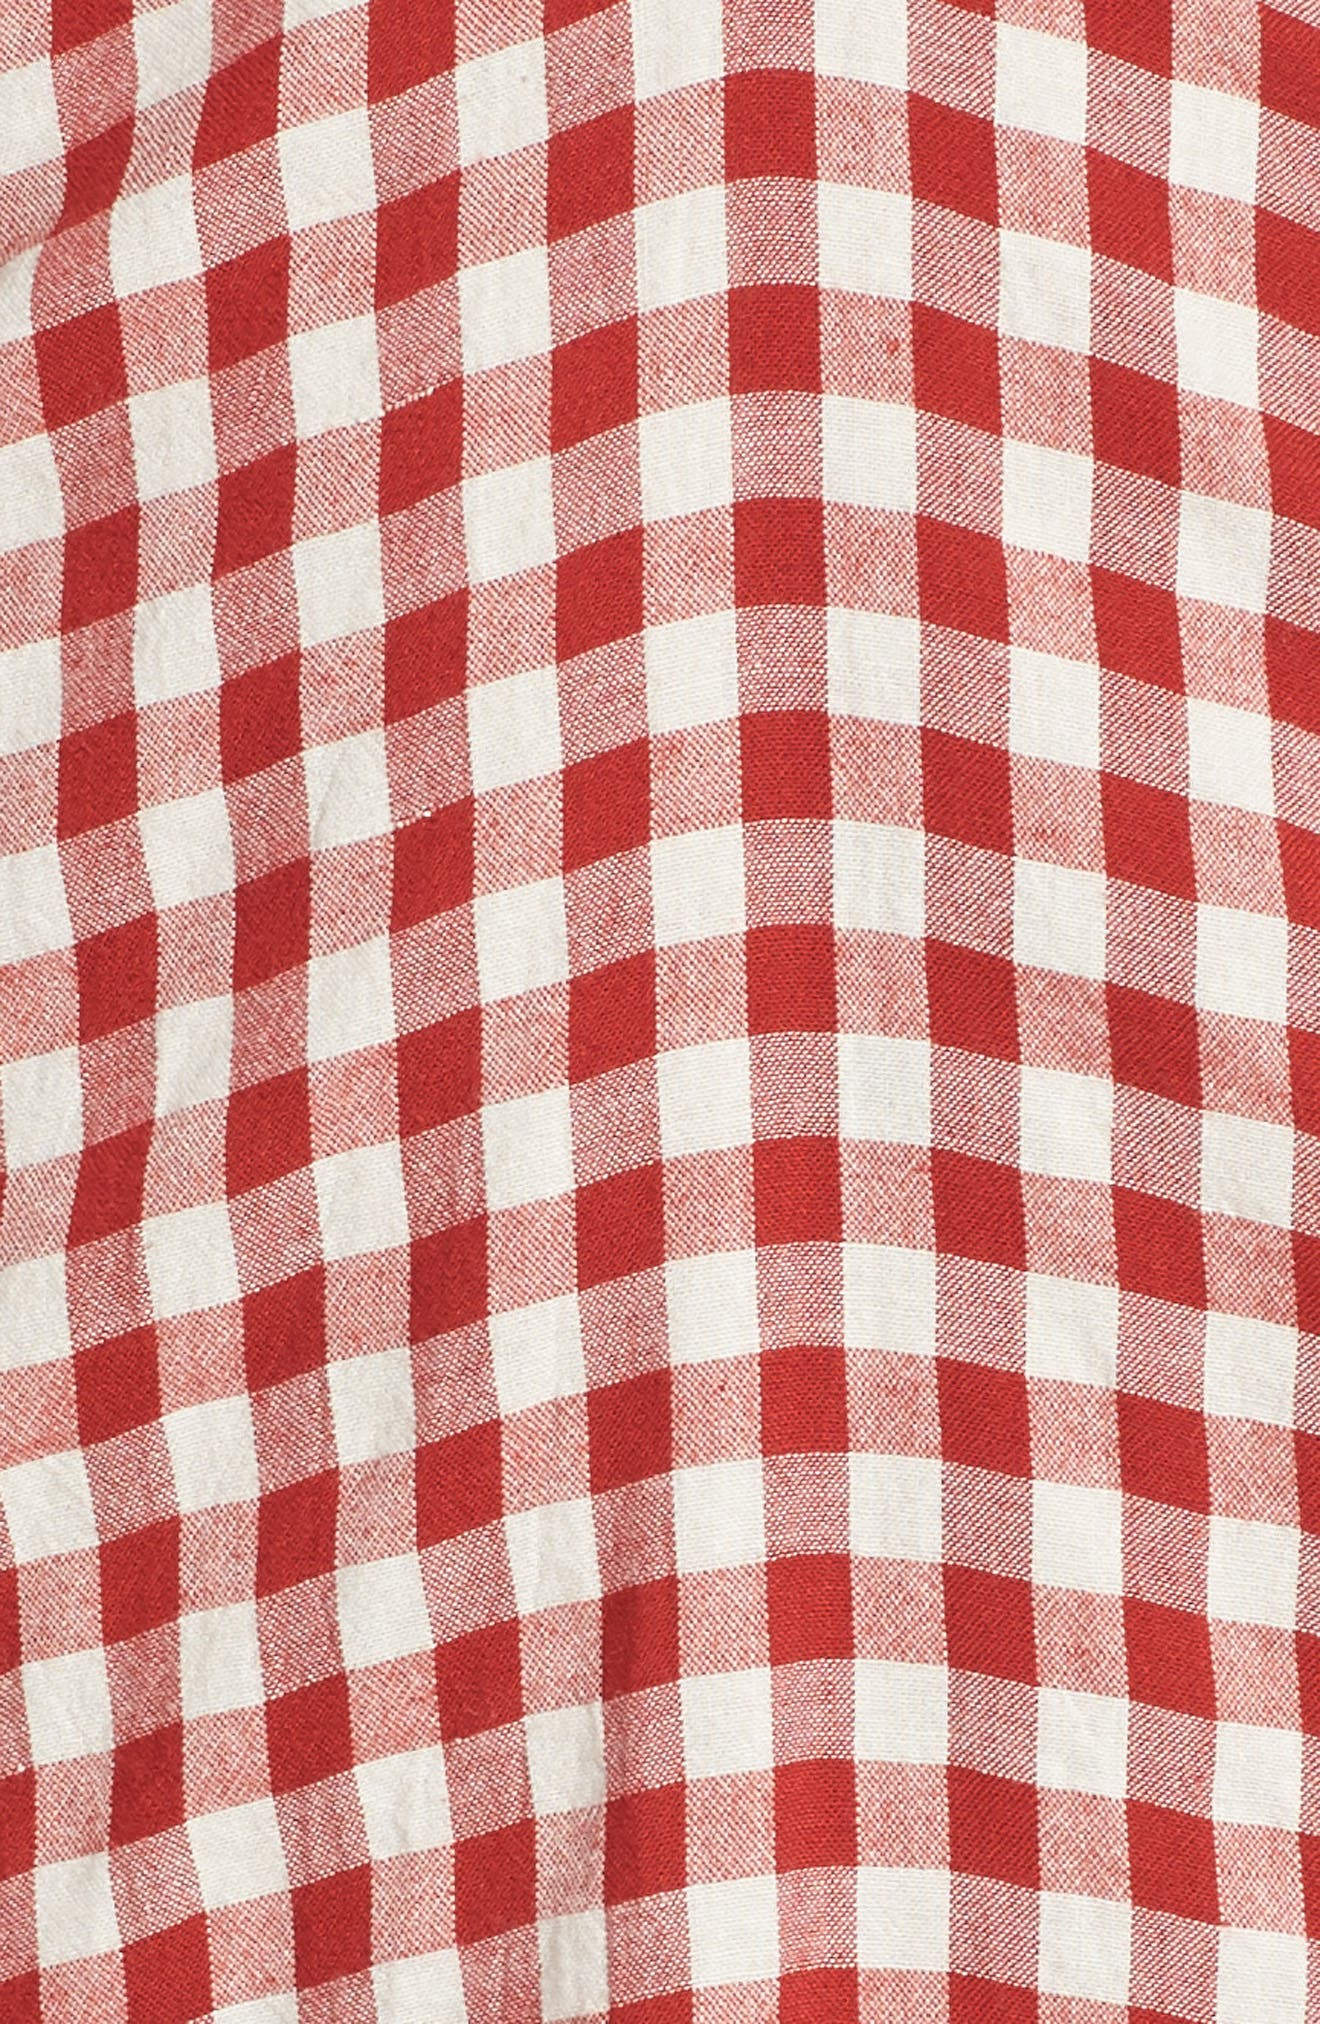 Gingham Bandeau Dress,                             Alternate thumbnail 6, color,                             Red-White